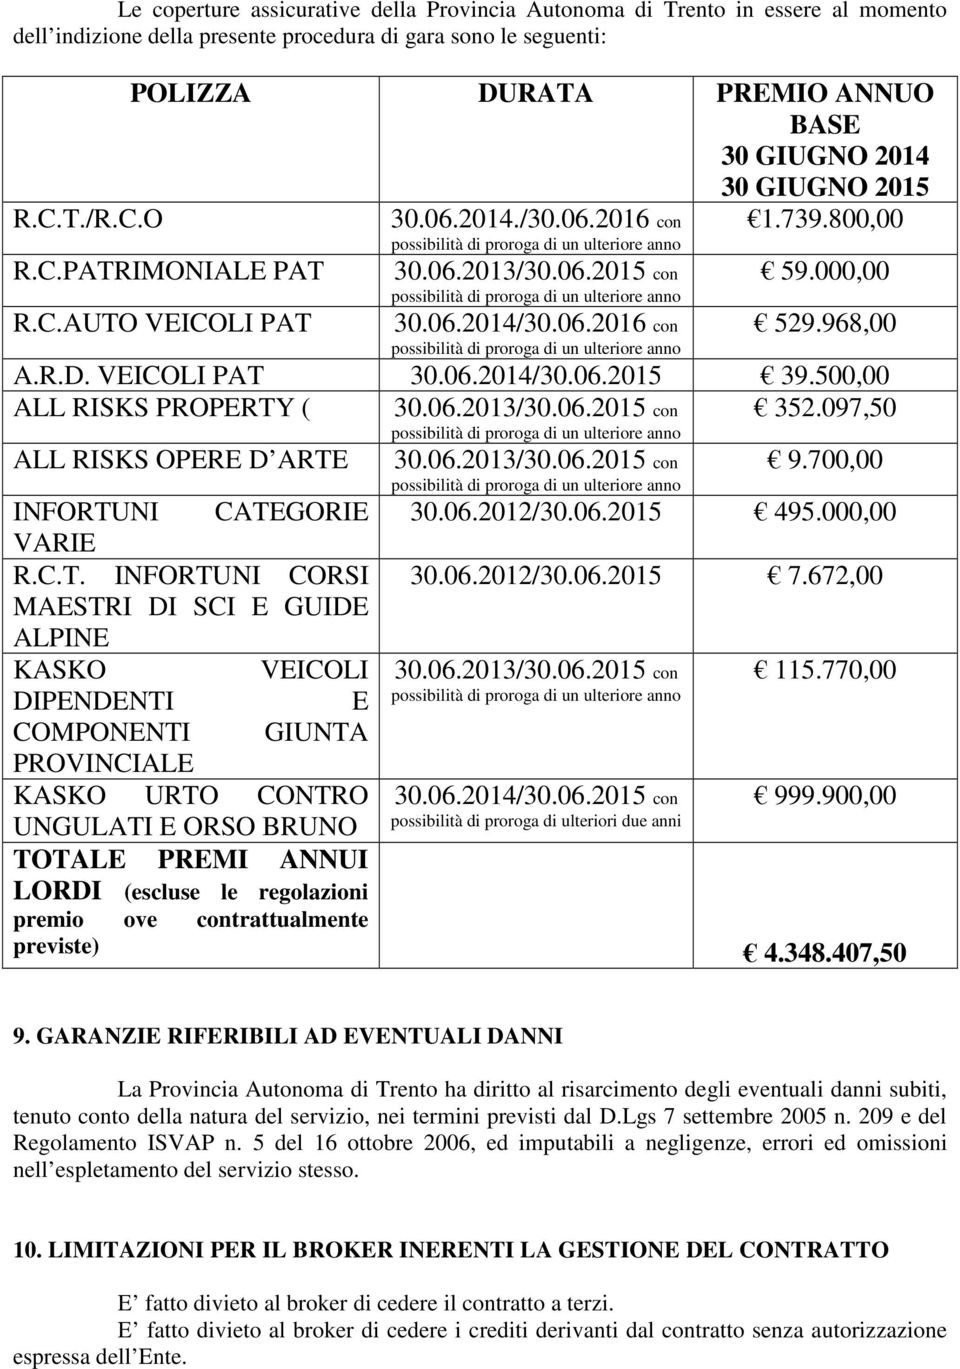 800,00 59.000,00 529.968,00 A.R.D. VEICOLI PAT 30.06.2014/30.06.2015 39.500,00 ALL RISKS PROPERTY ( 352.097,50 ALL RISKS OPERE D ARTE 30.06.2013/30.06.2015 con 30.06.2013/30.06.2015 con 9.